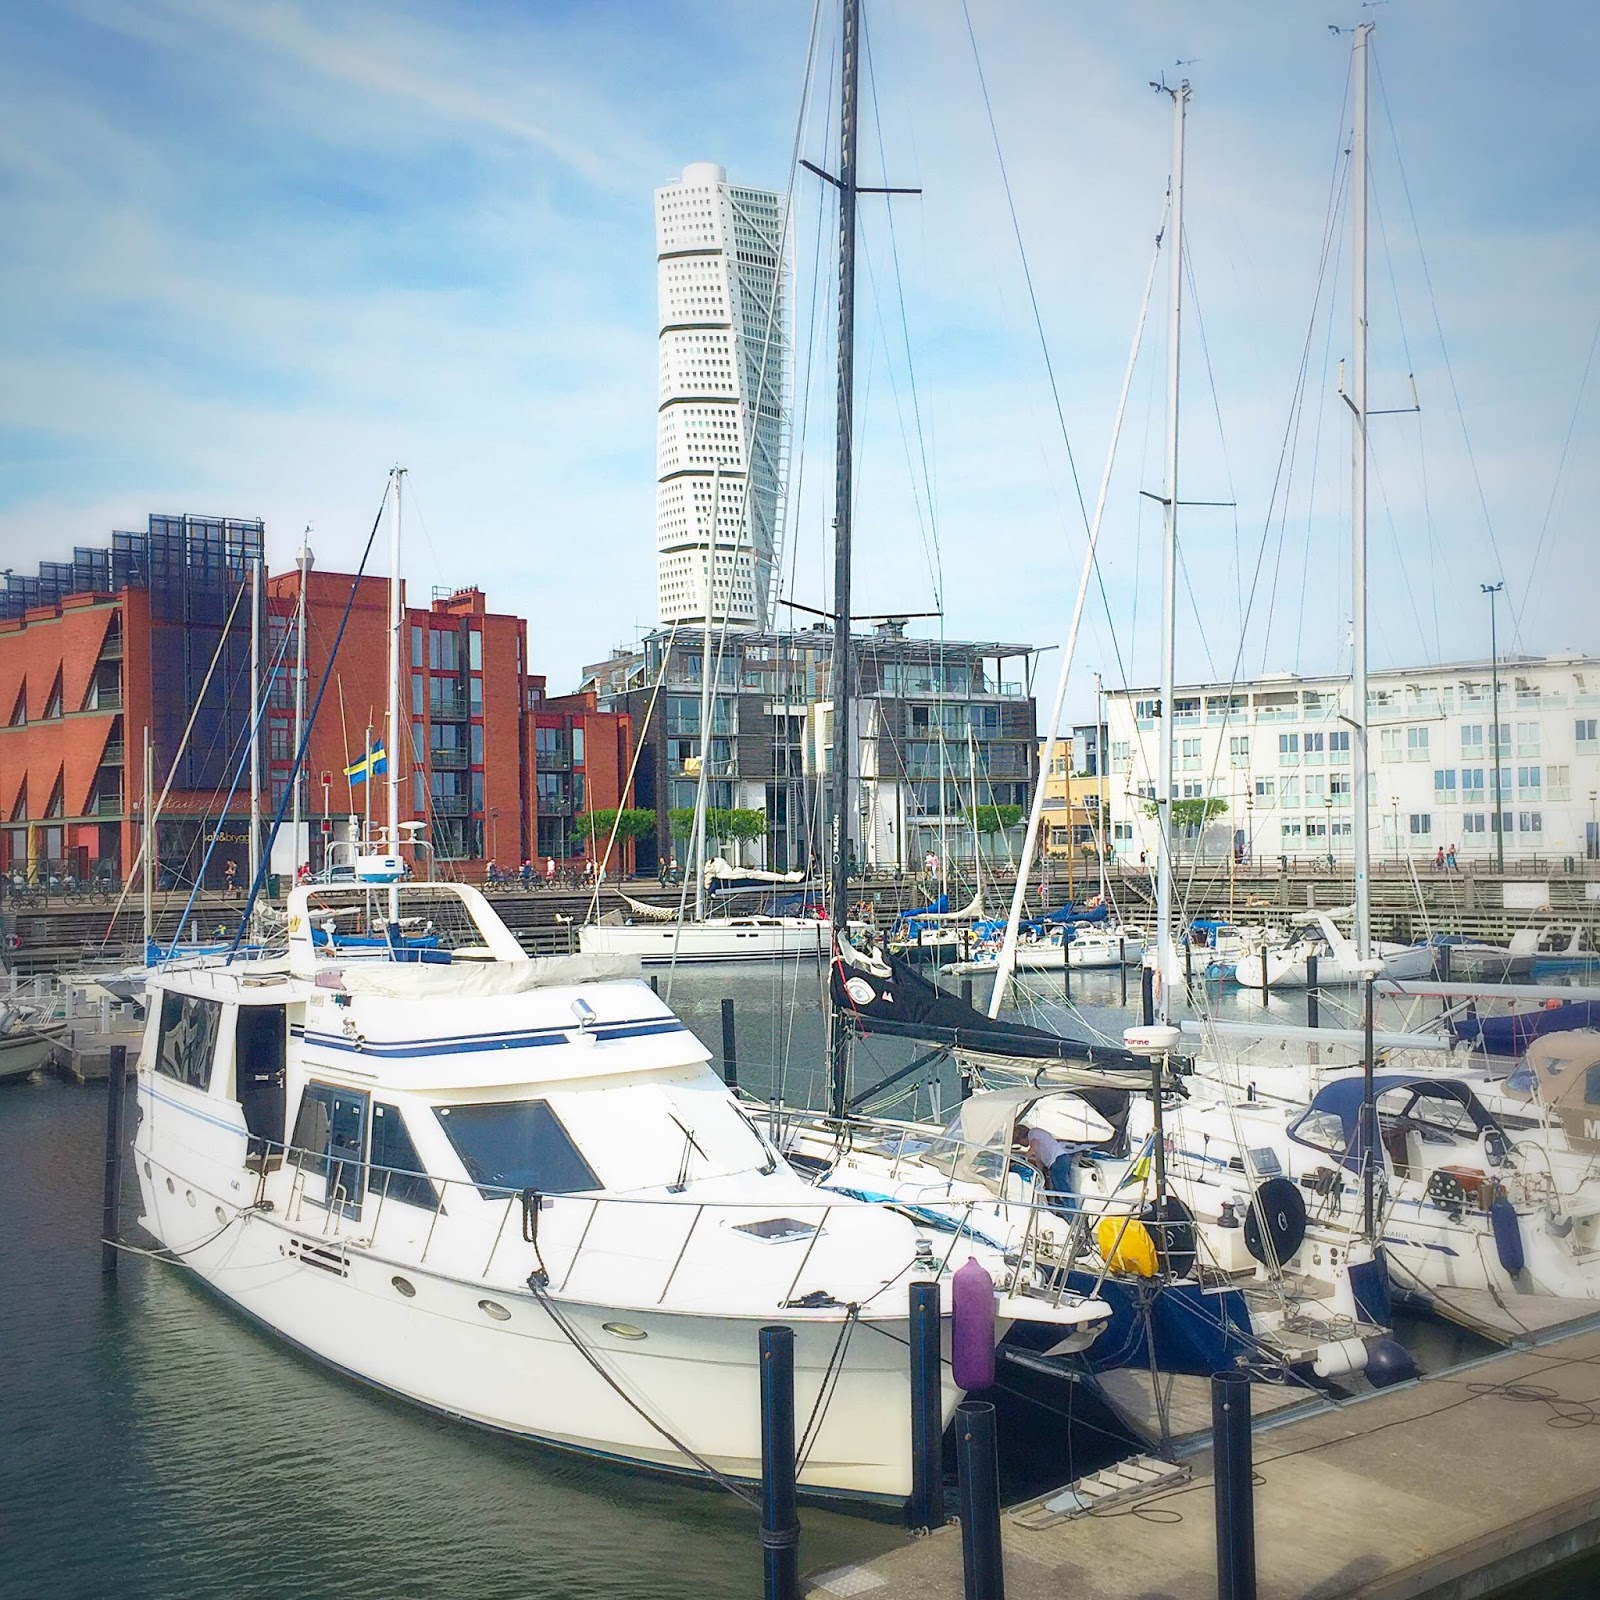 West Havn in Malmo with the Turning Turso